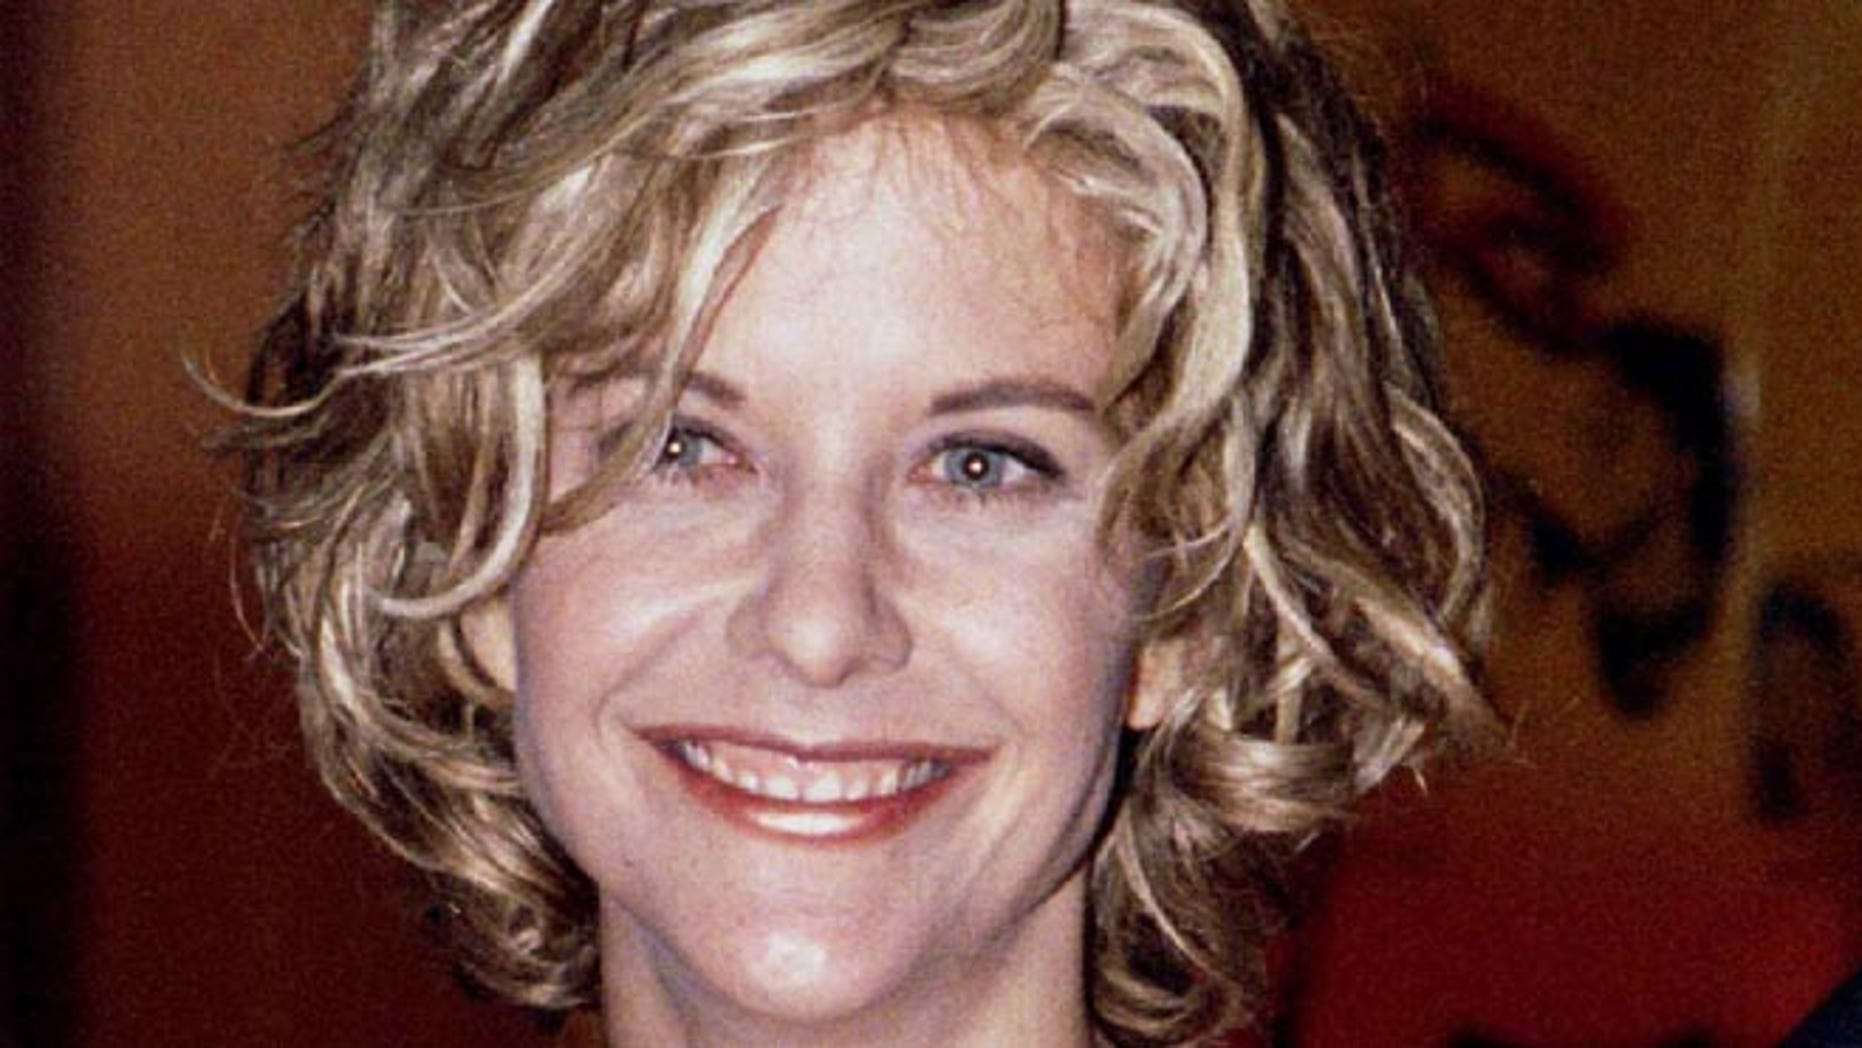 """Meg Ryan, one of the stars of the new film """"Courage Under Fire,"""" poses at the film's premiere July 8. The film also stars Denzel-Washington. - RTXGMT1"""